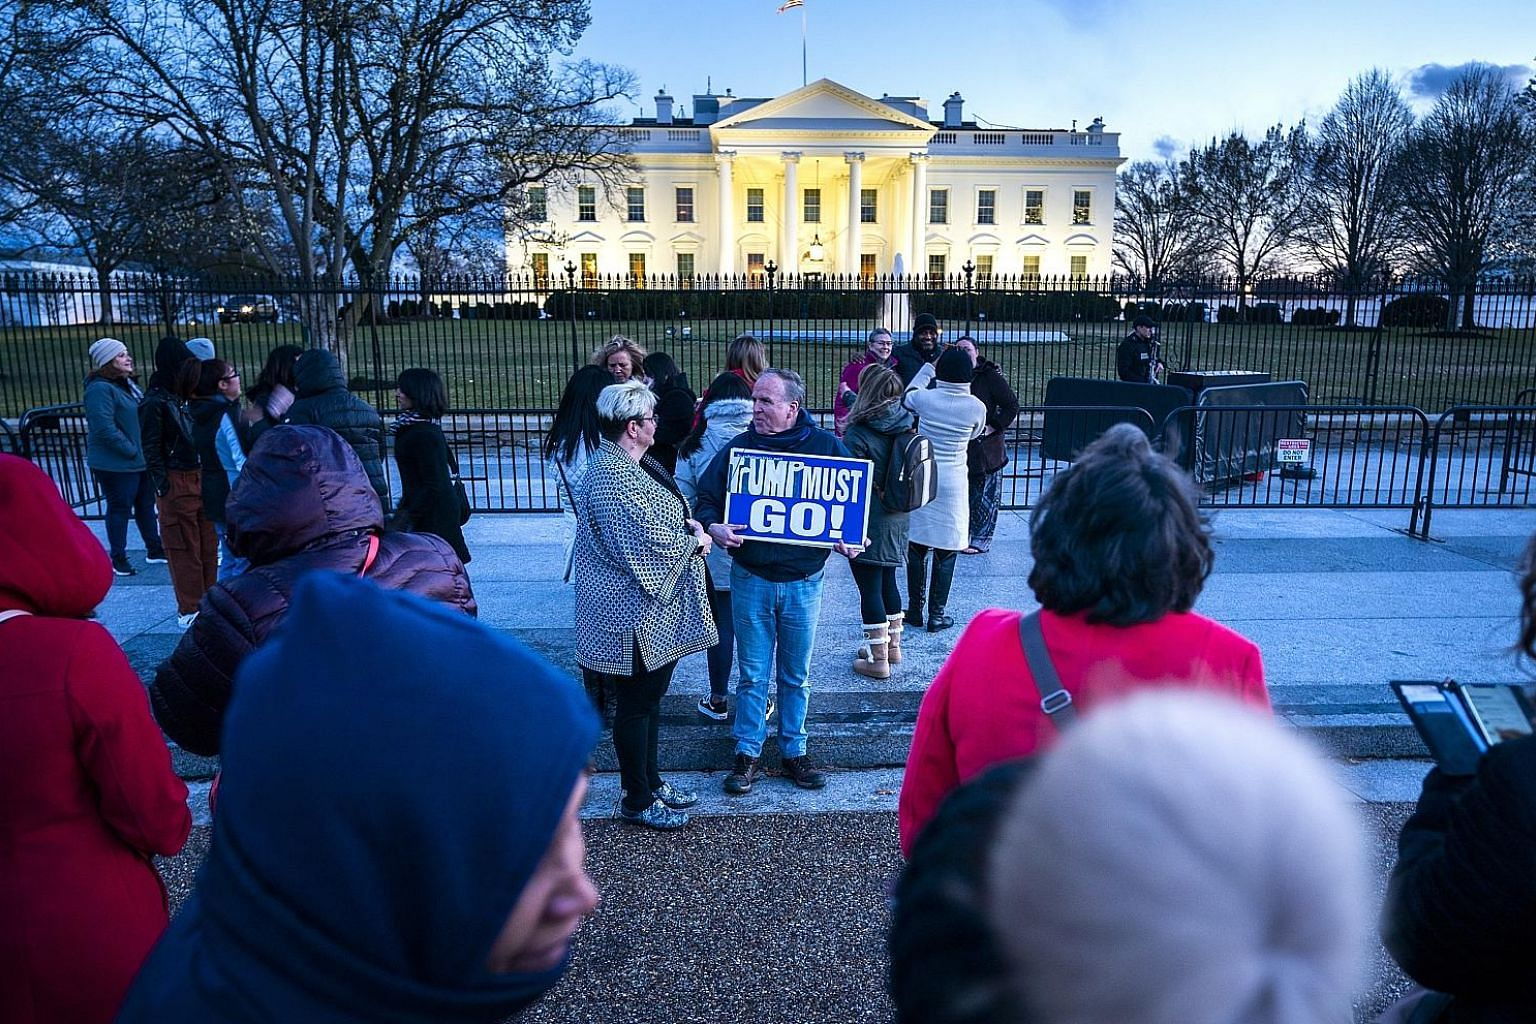 People gathering outside the White House at dusk after Special Counsel Robert Mueller delivered his report on Russia's interference in the 2016 US presidential election to the Department of Justice on Friday. A February poll by the Washington Post fo